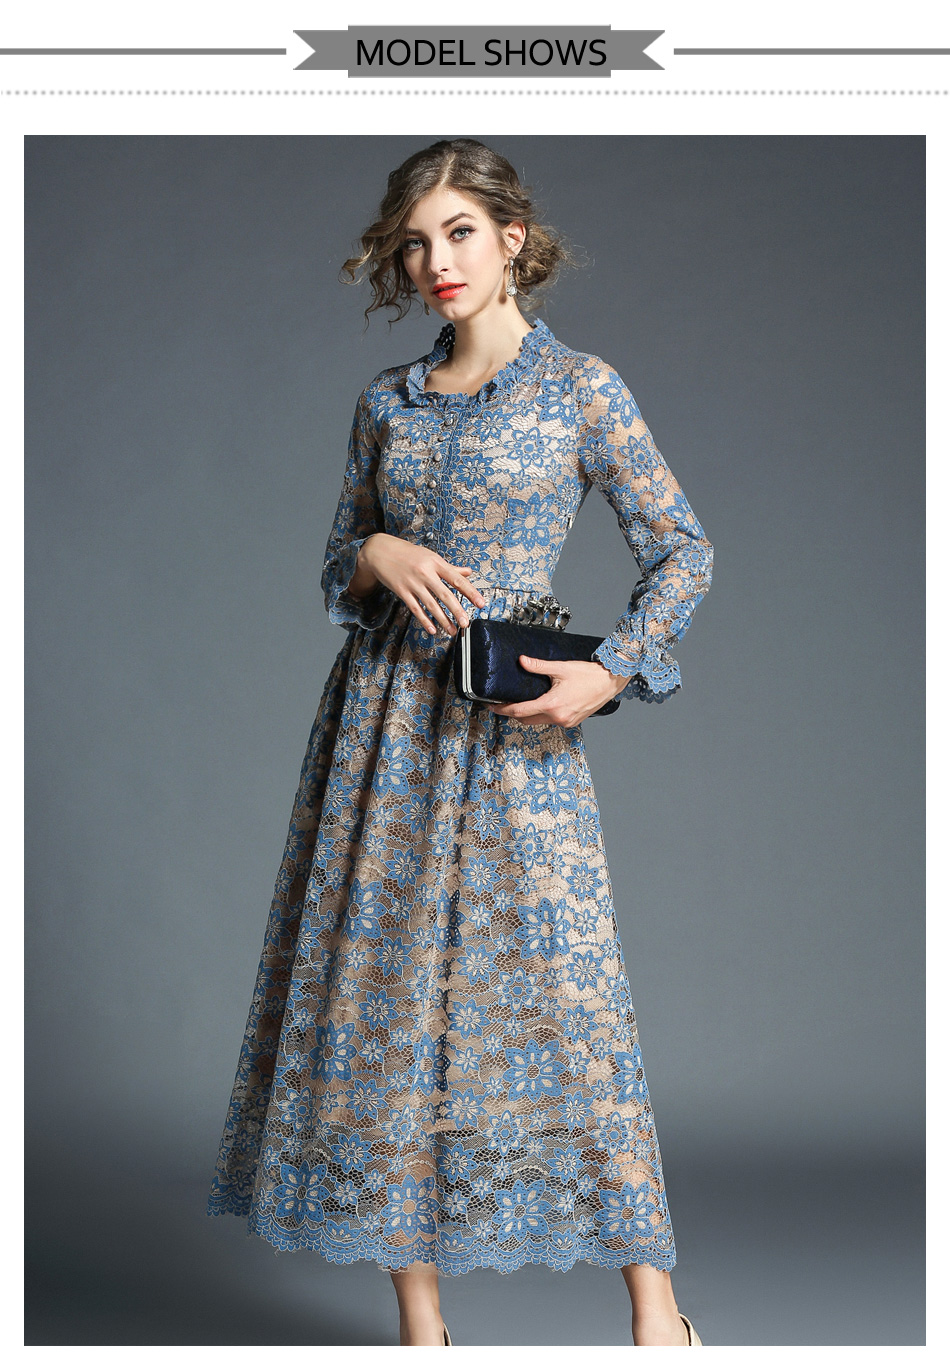 Elegant Vintage Flower Hollow Out Long Sleeve Lace Dress 2